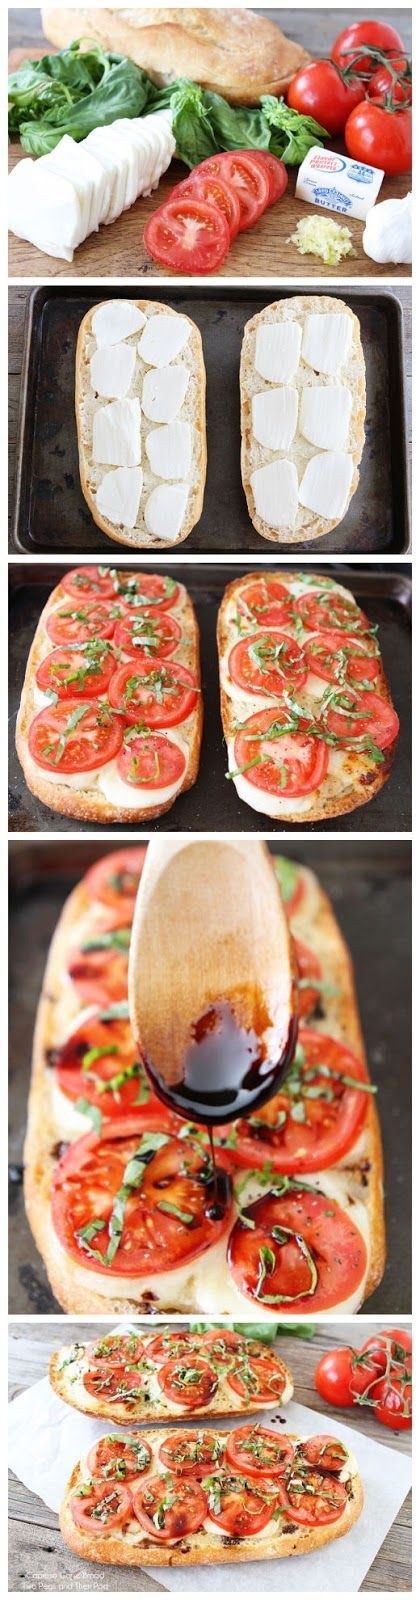 "Caprese Garlic Bread..i know i pinned this ""main dish"" but with a salad, this would be a crazy good dinner"